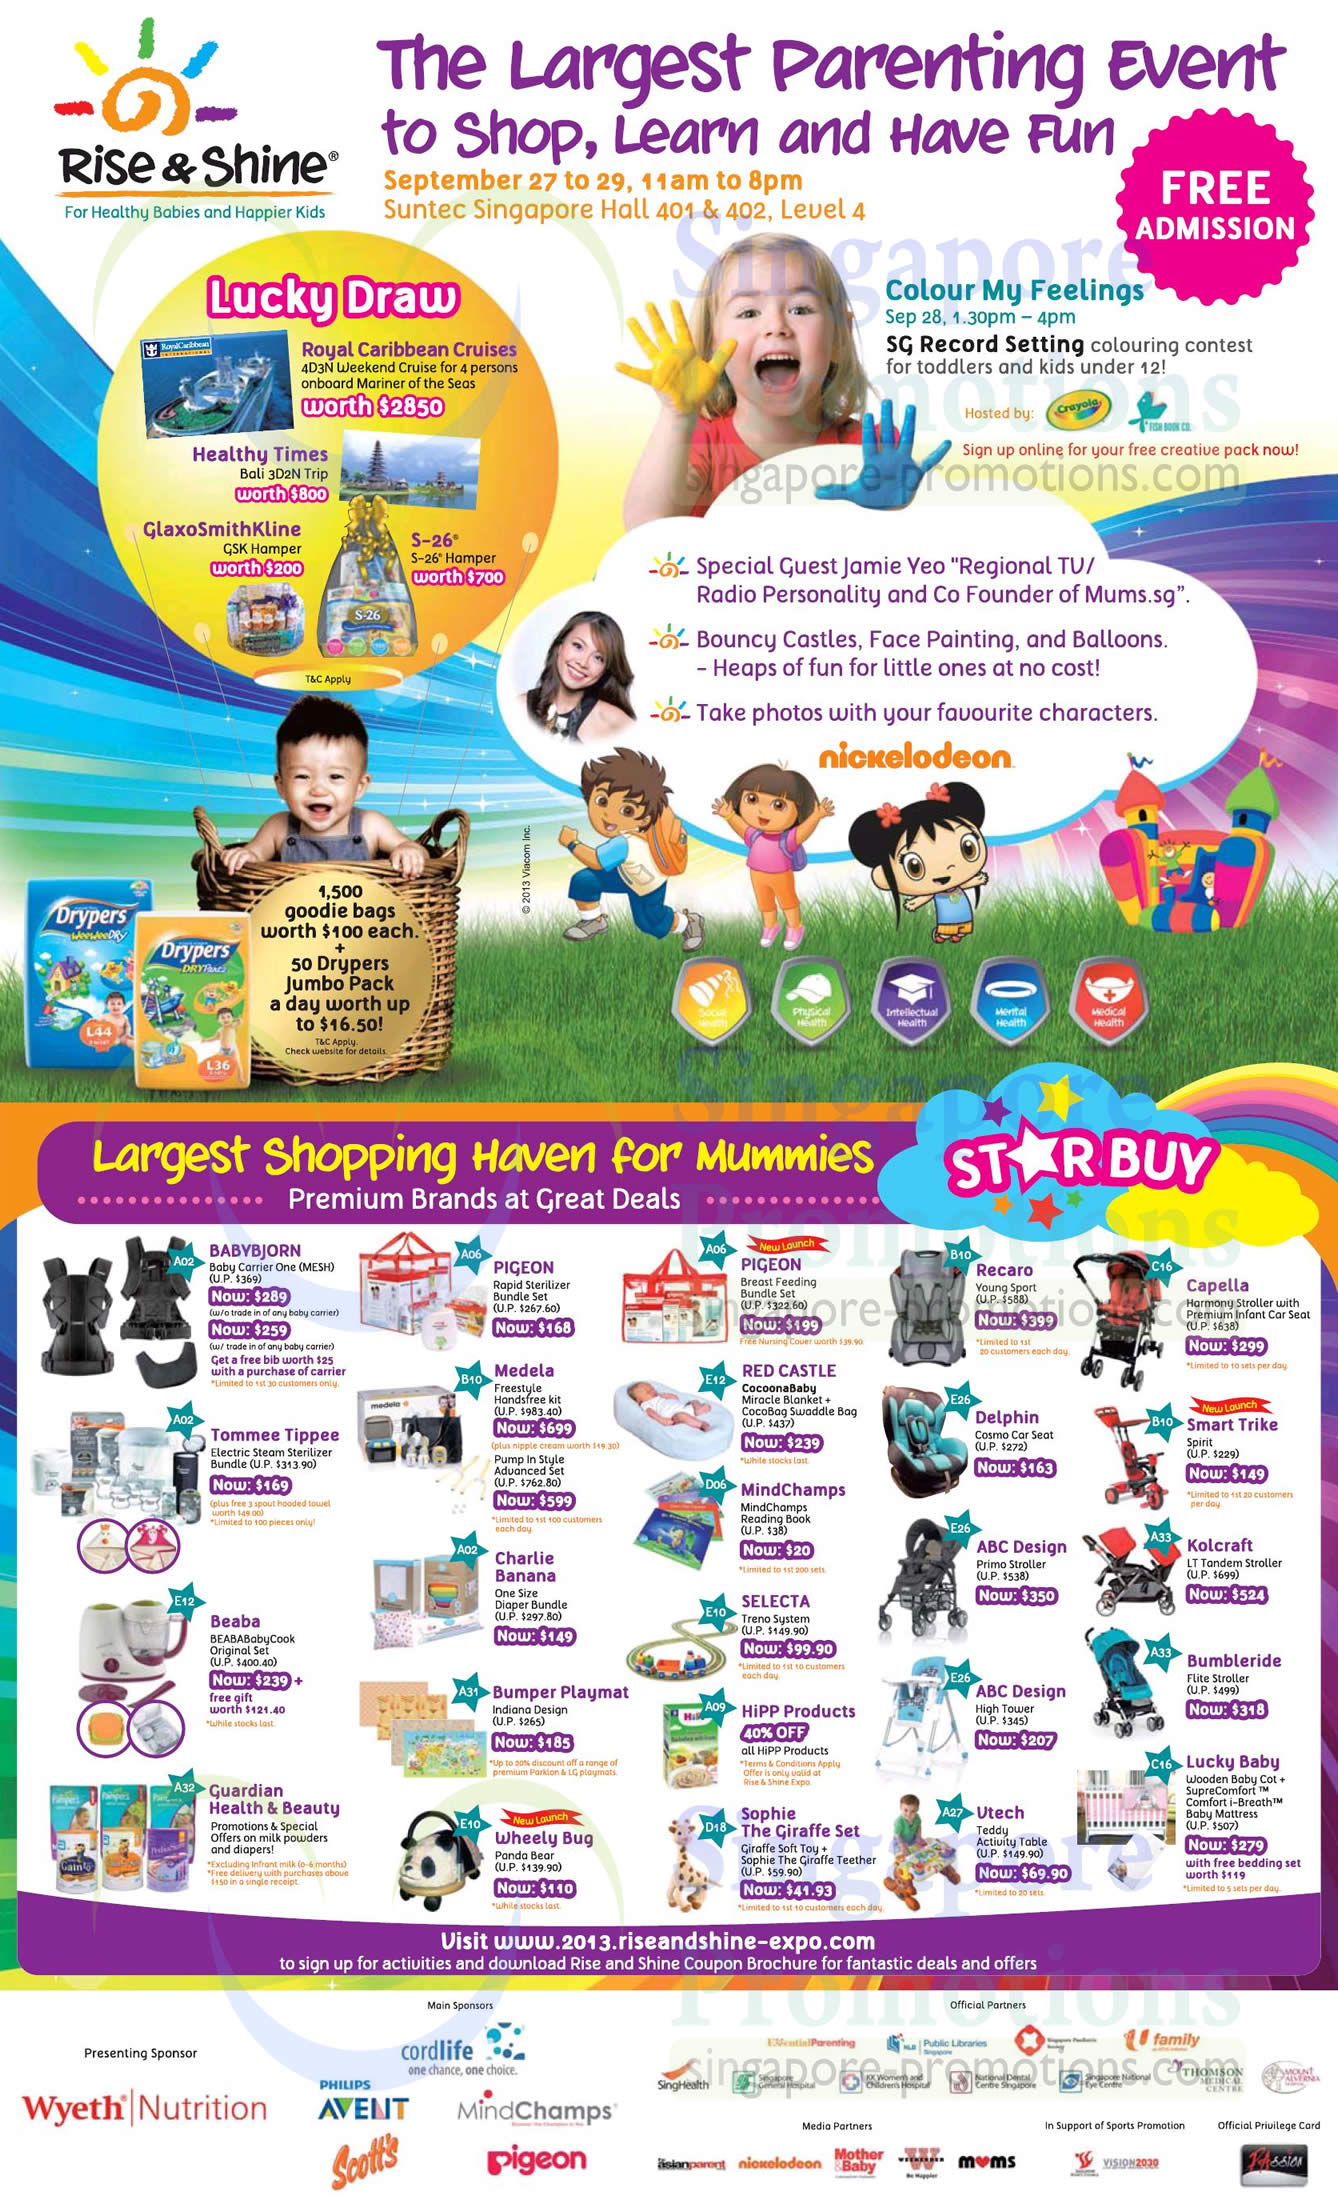 Lucky Draw, Event Highlights, Premium Brands, Stay Buys